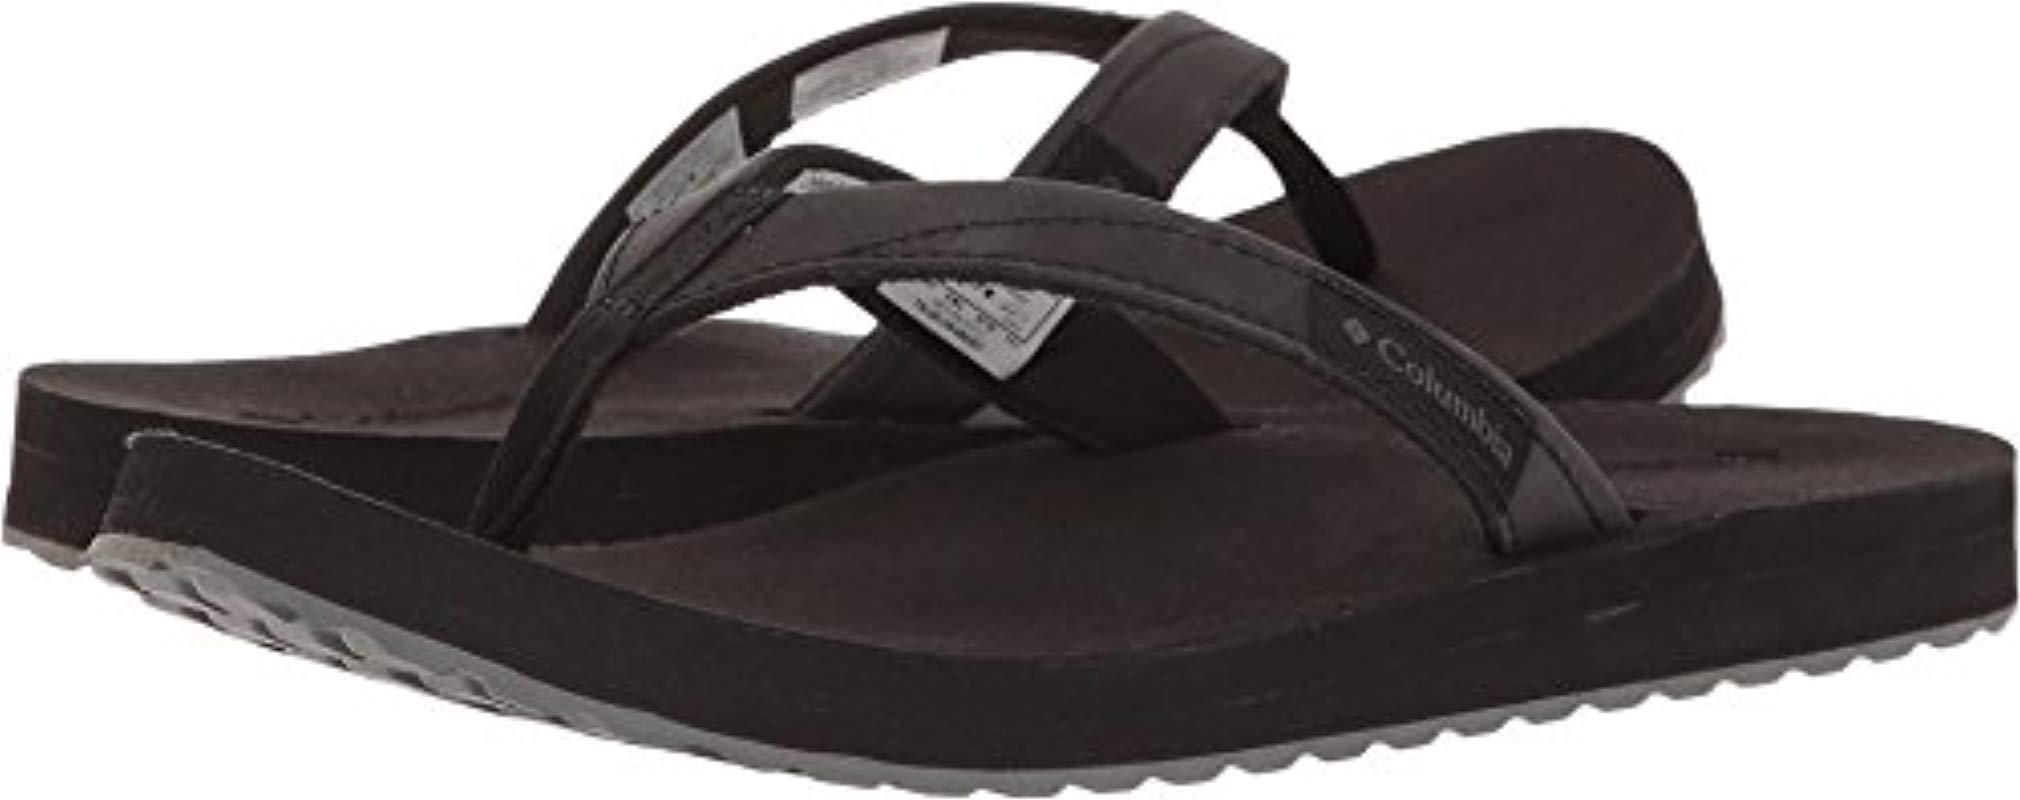 Lyst - Columbia Sorrento Leather Flip Athletic Sandal in Black - Save 7% d029b45a65